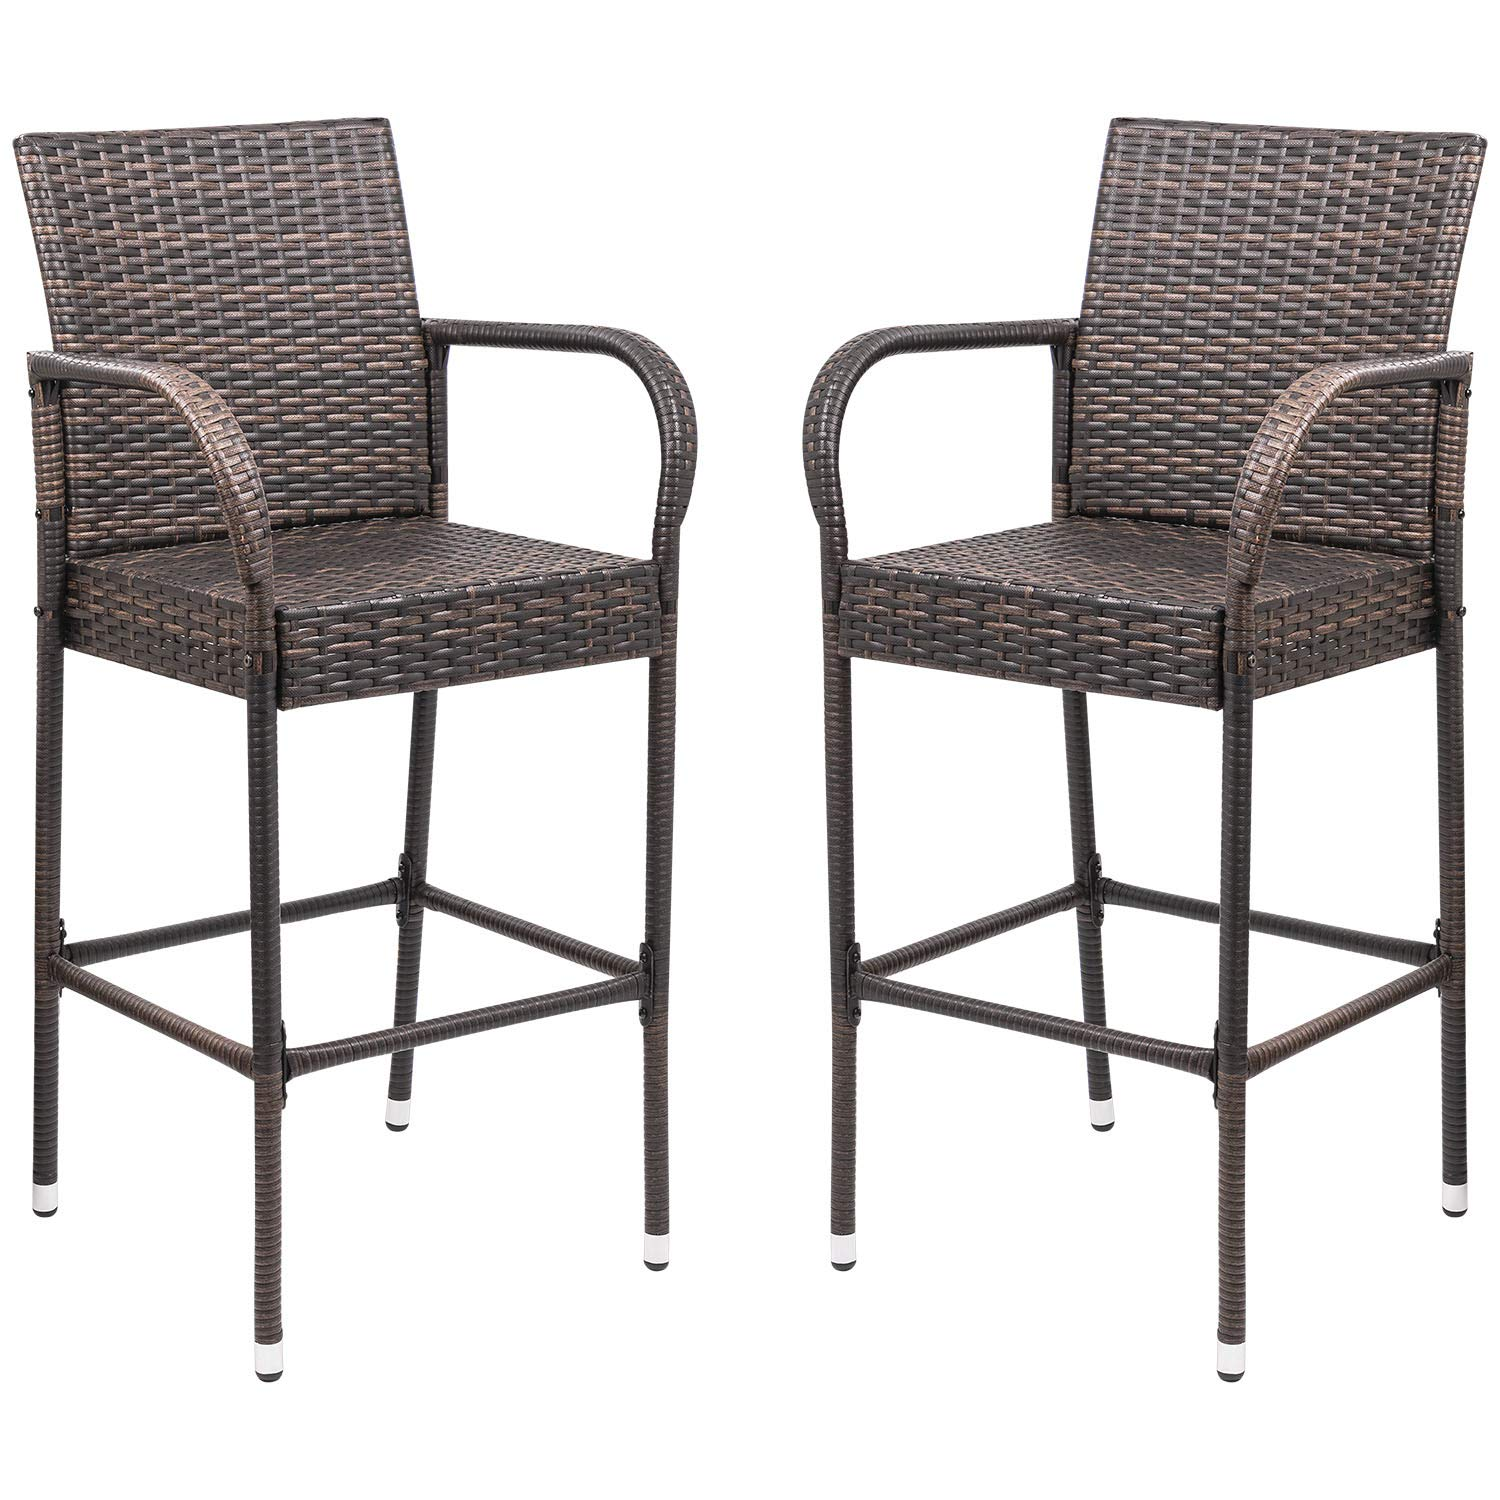 Homall Patio Bar Stools Wicker Barstools Indoor Outdoor Bar Stool Patio Furniture with Footrest and Armrest for Garden Pool Lawn Backyard Set of 2 (Brown) by Homall